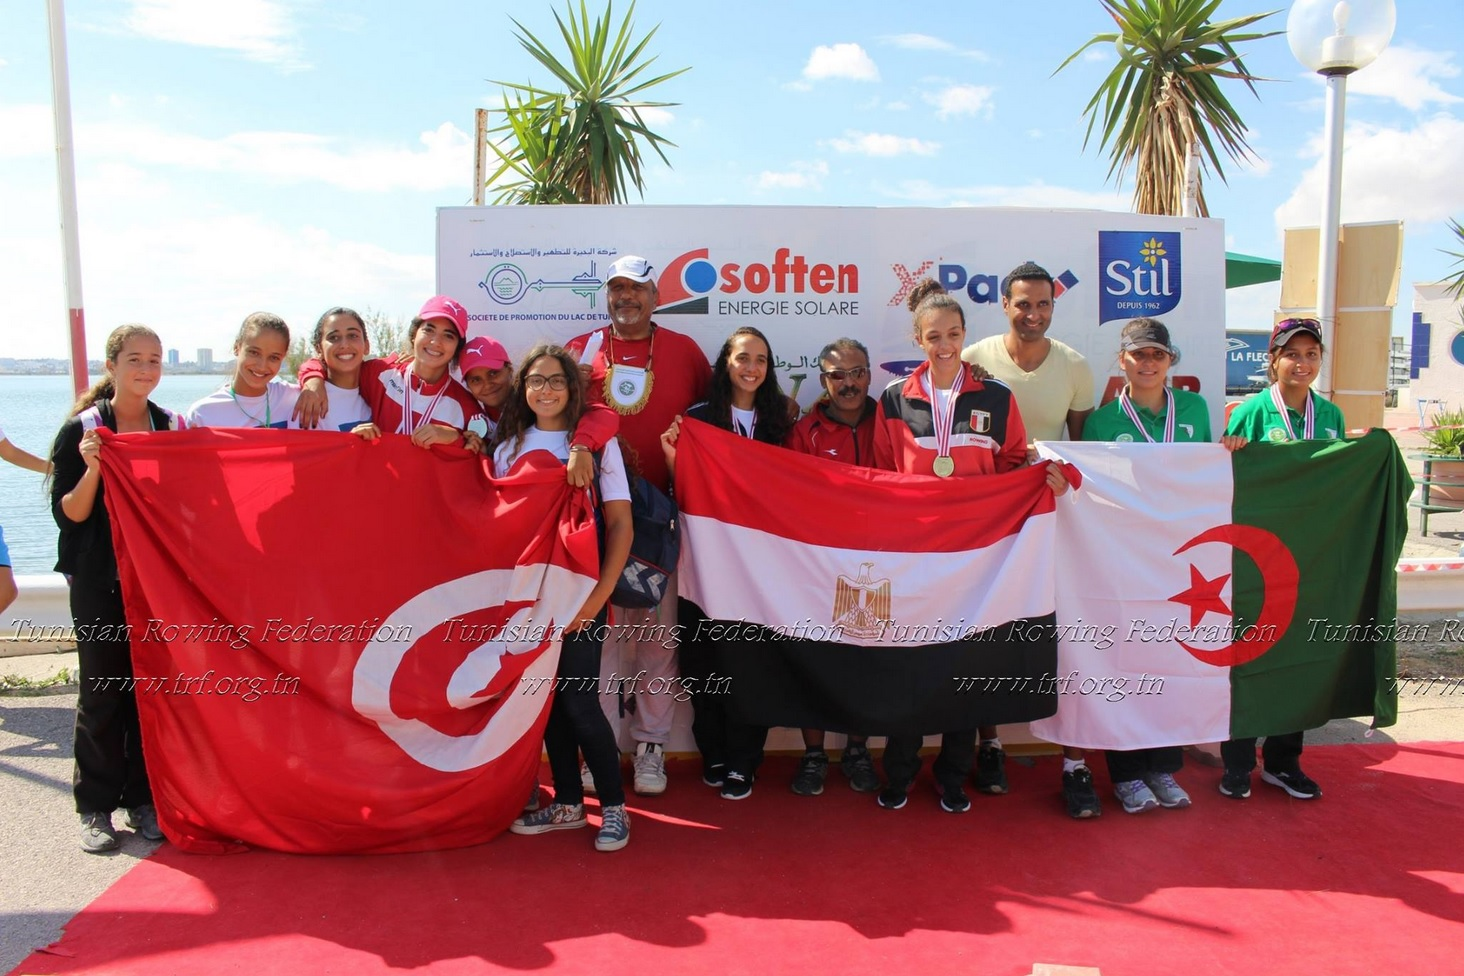 Tunisian Rowing Federation/FACEBOOK)